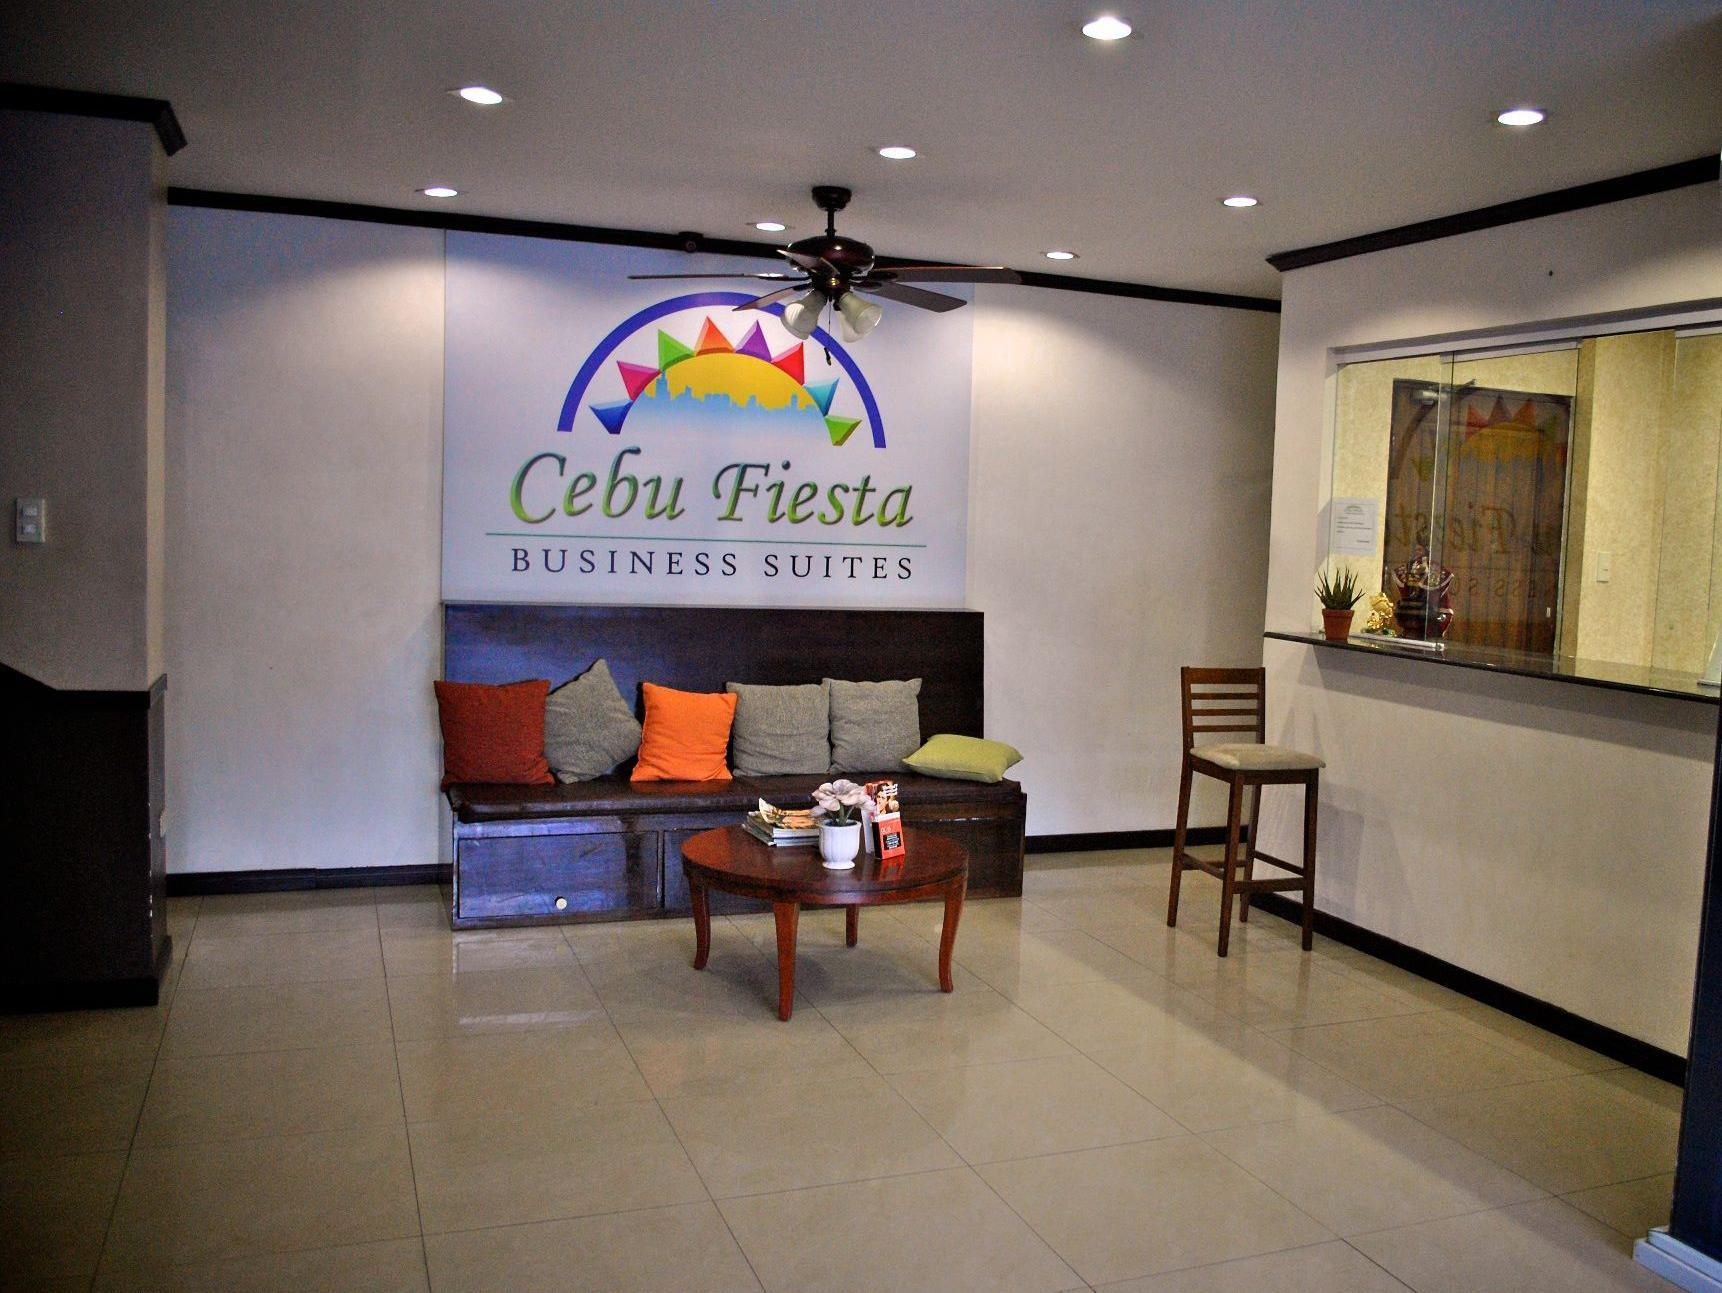 Cebu Fiesta Business Suites Cebu